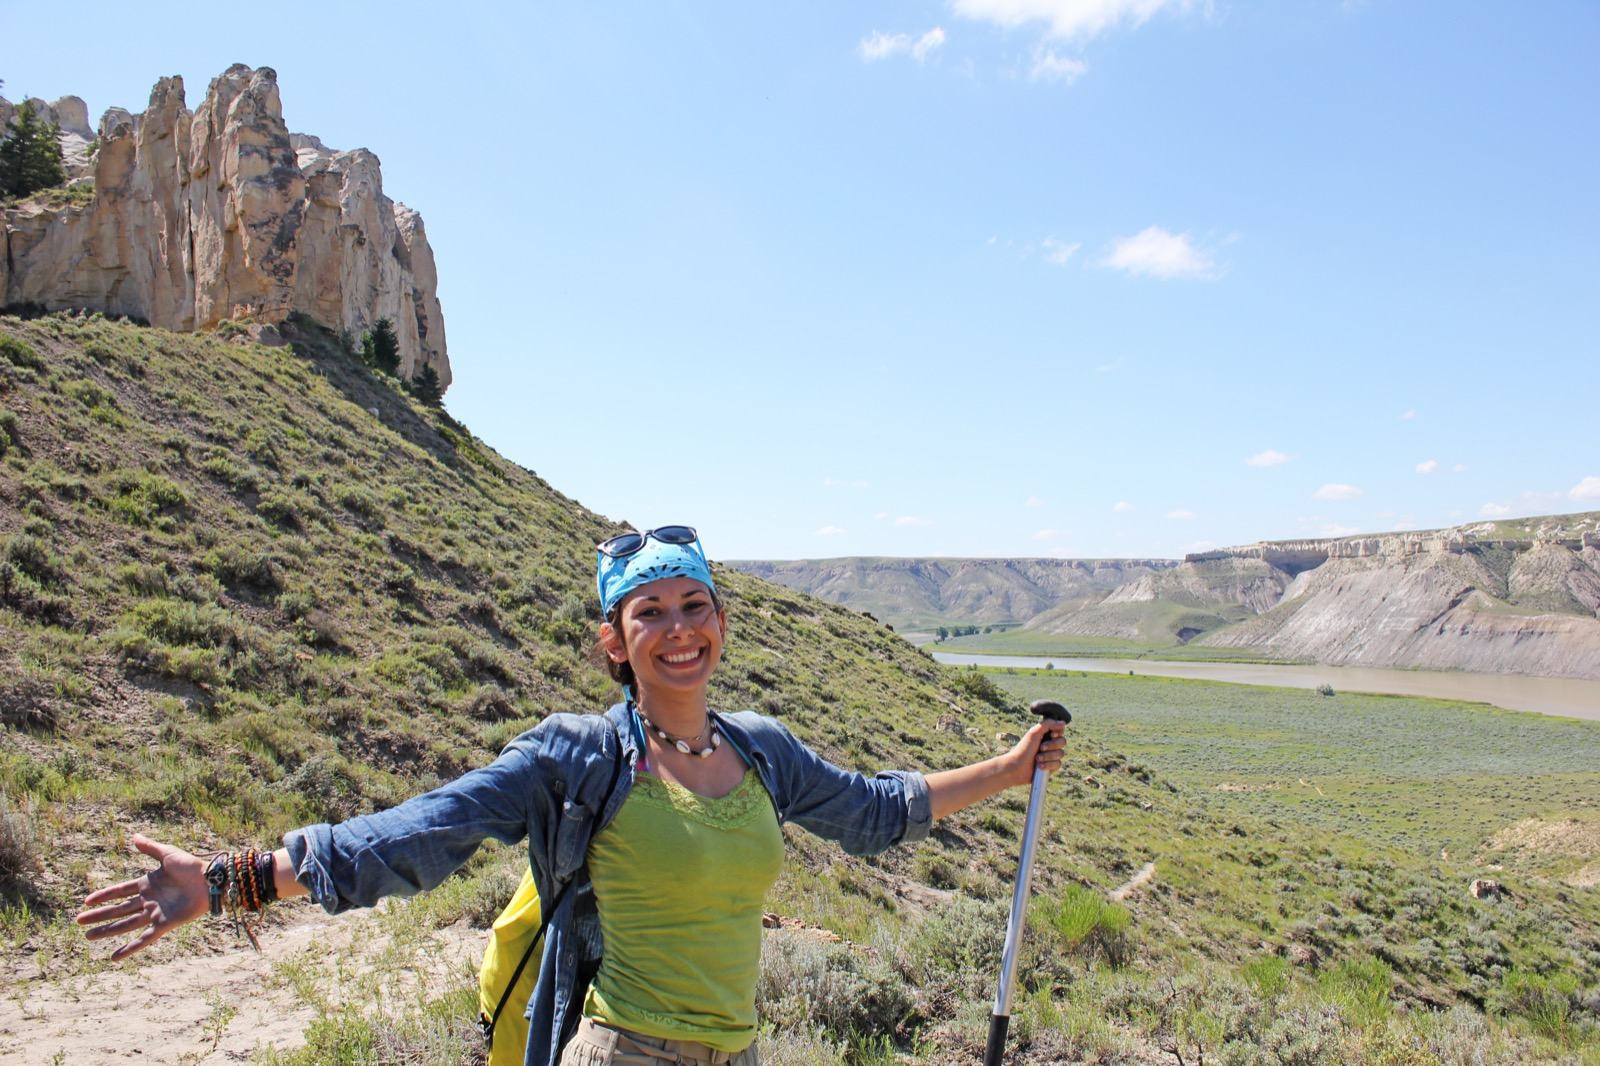 A woman smiles for the camera while on land with the Missouri River and rock formations in the background.